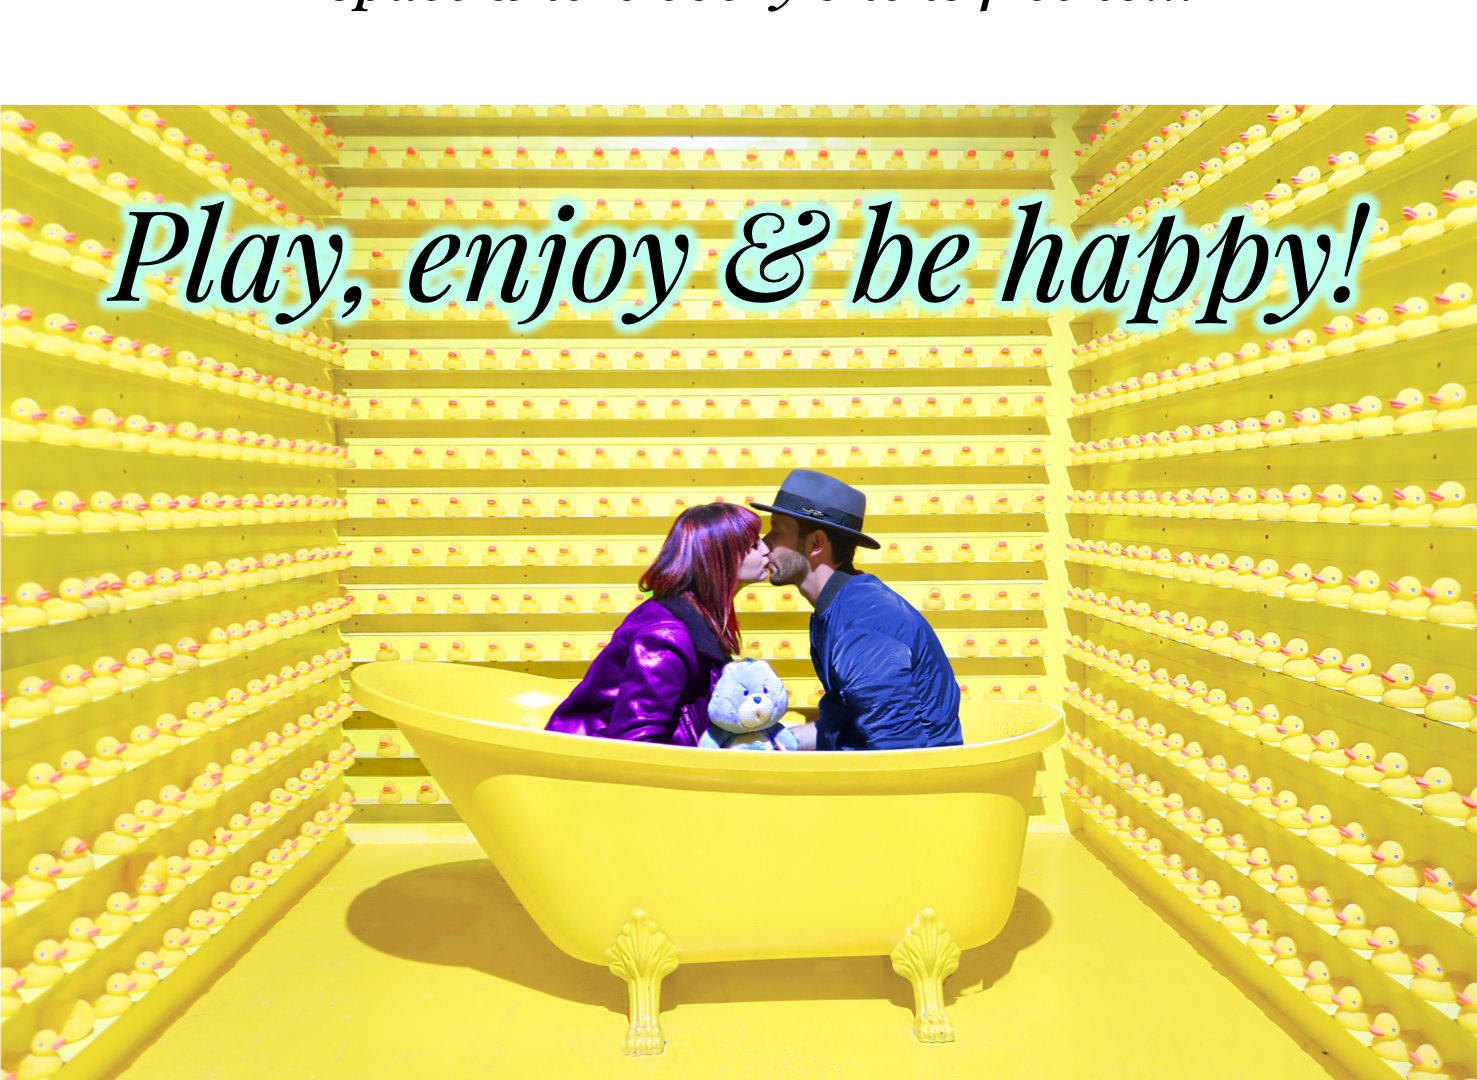 Play, enjoy & be happy!.png